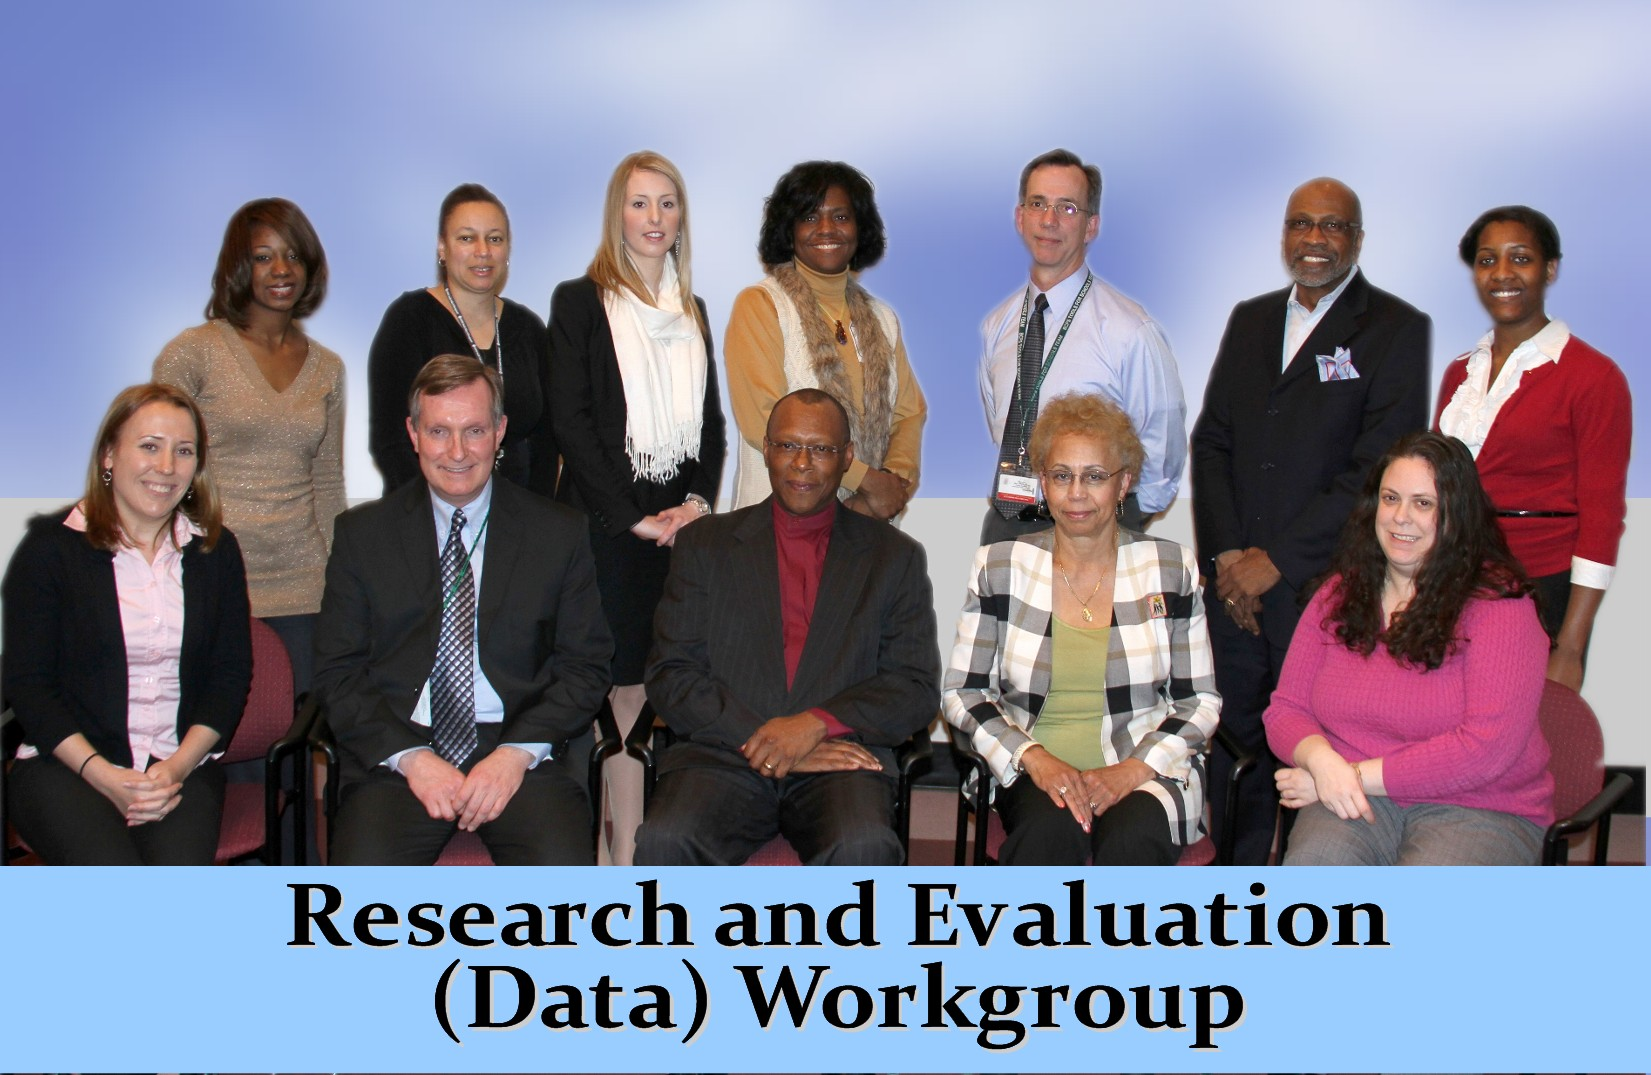 Research and Evaluation (Data) Workgroup.jpg